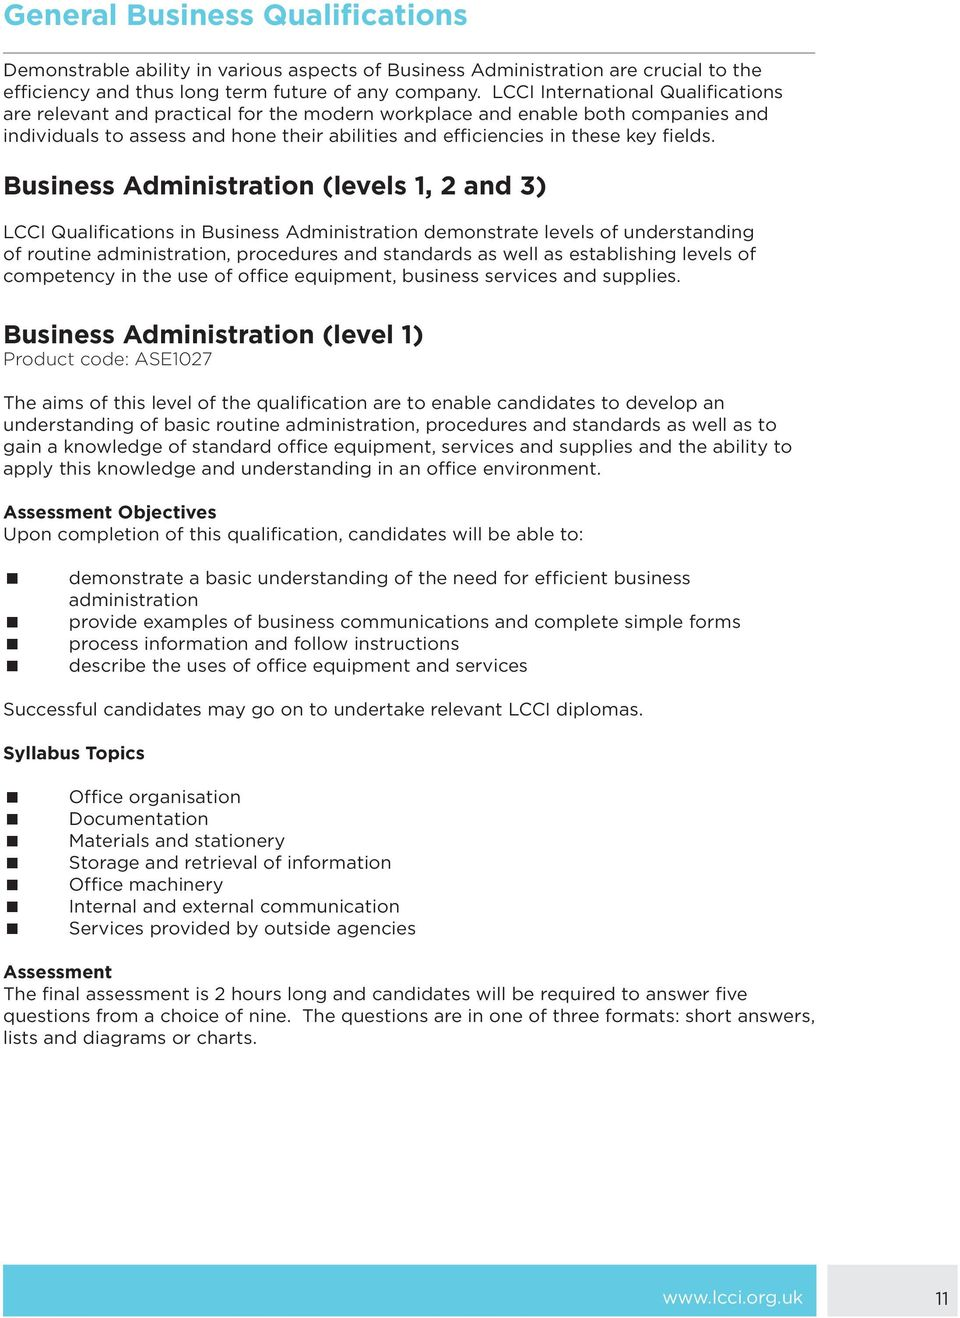 Business Administration (levels 1, 2 and 3) LCCI Qualifications in Business Administration demonstrate levels of understanding of routine administration, procedures and standards as well as